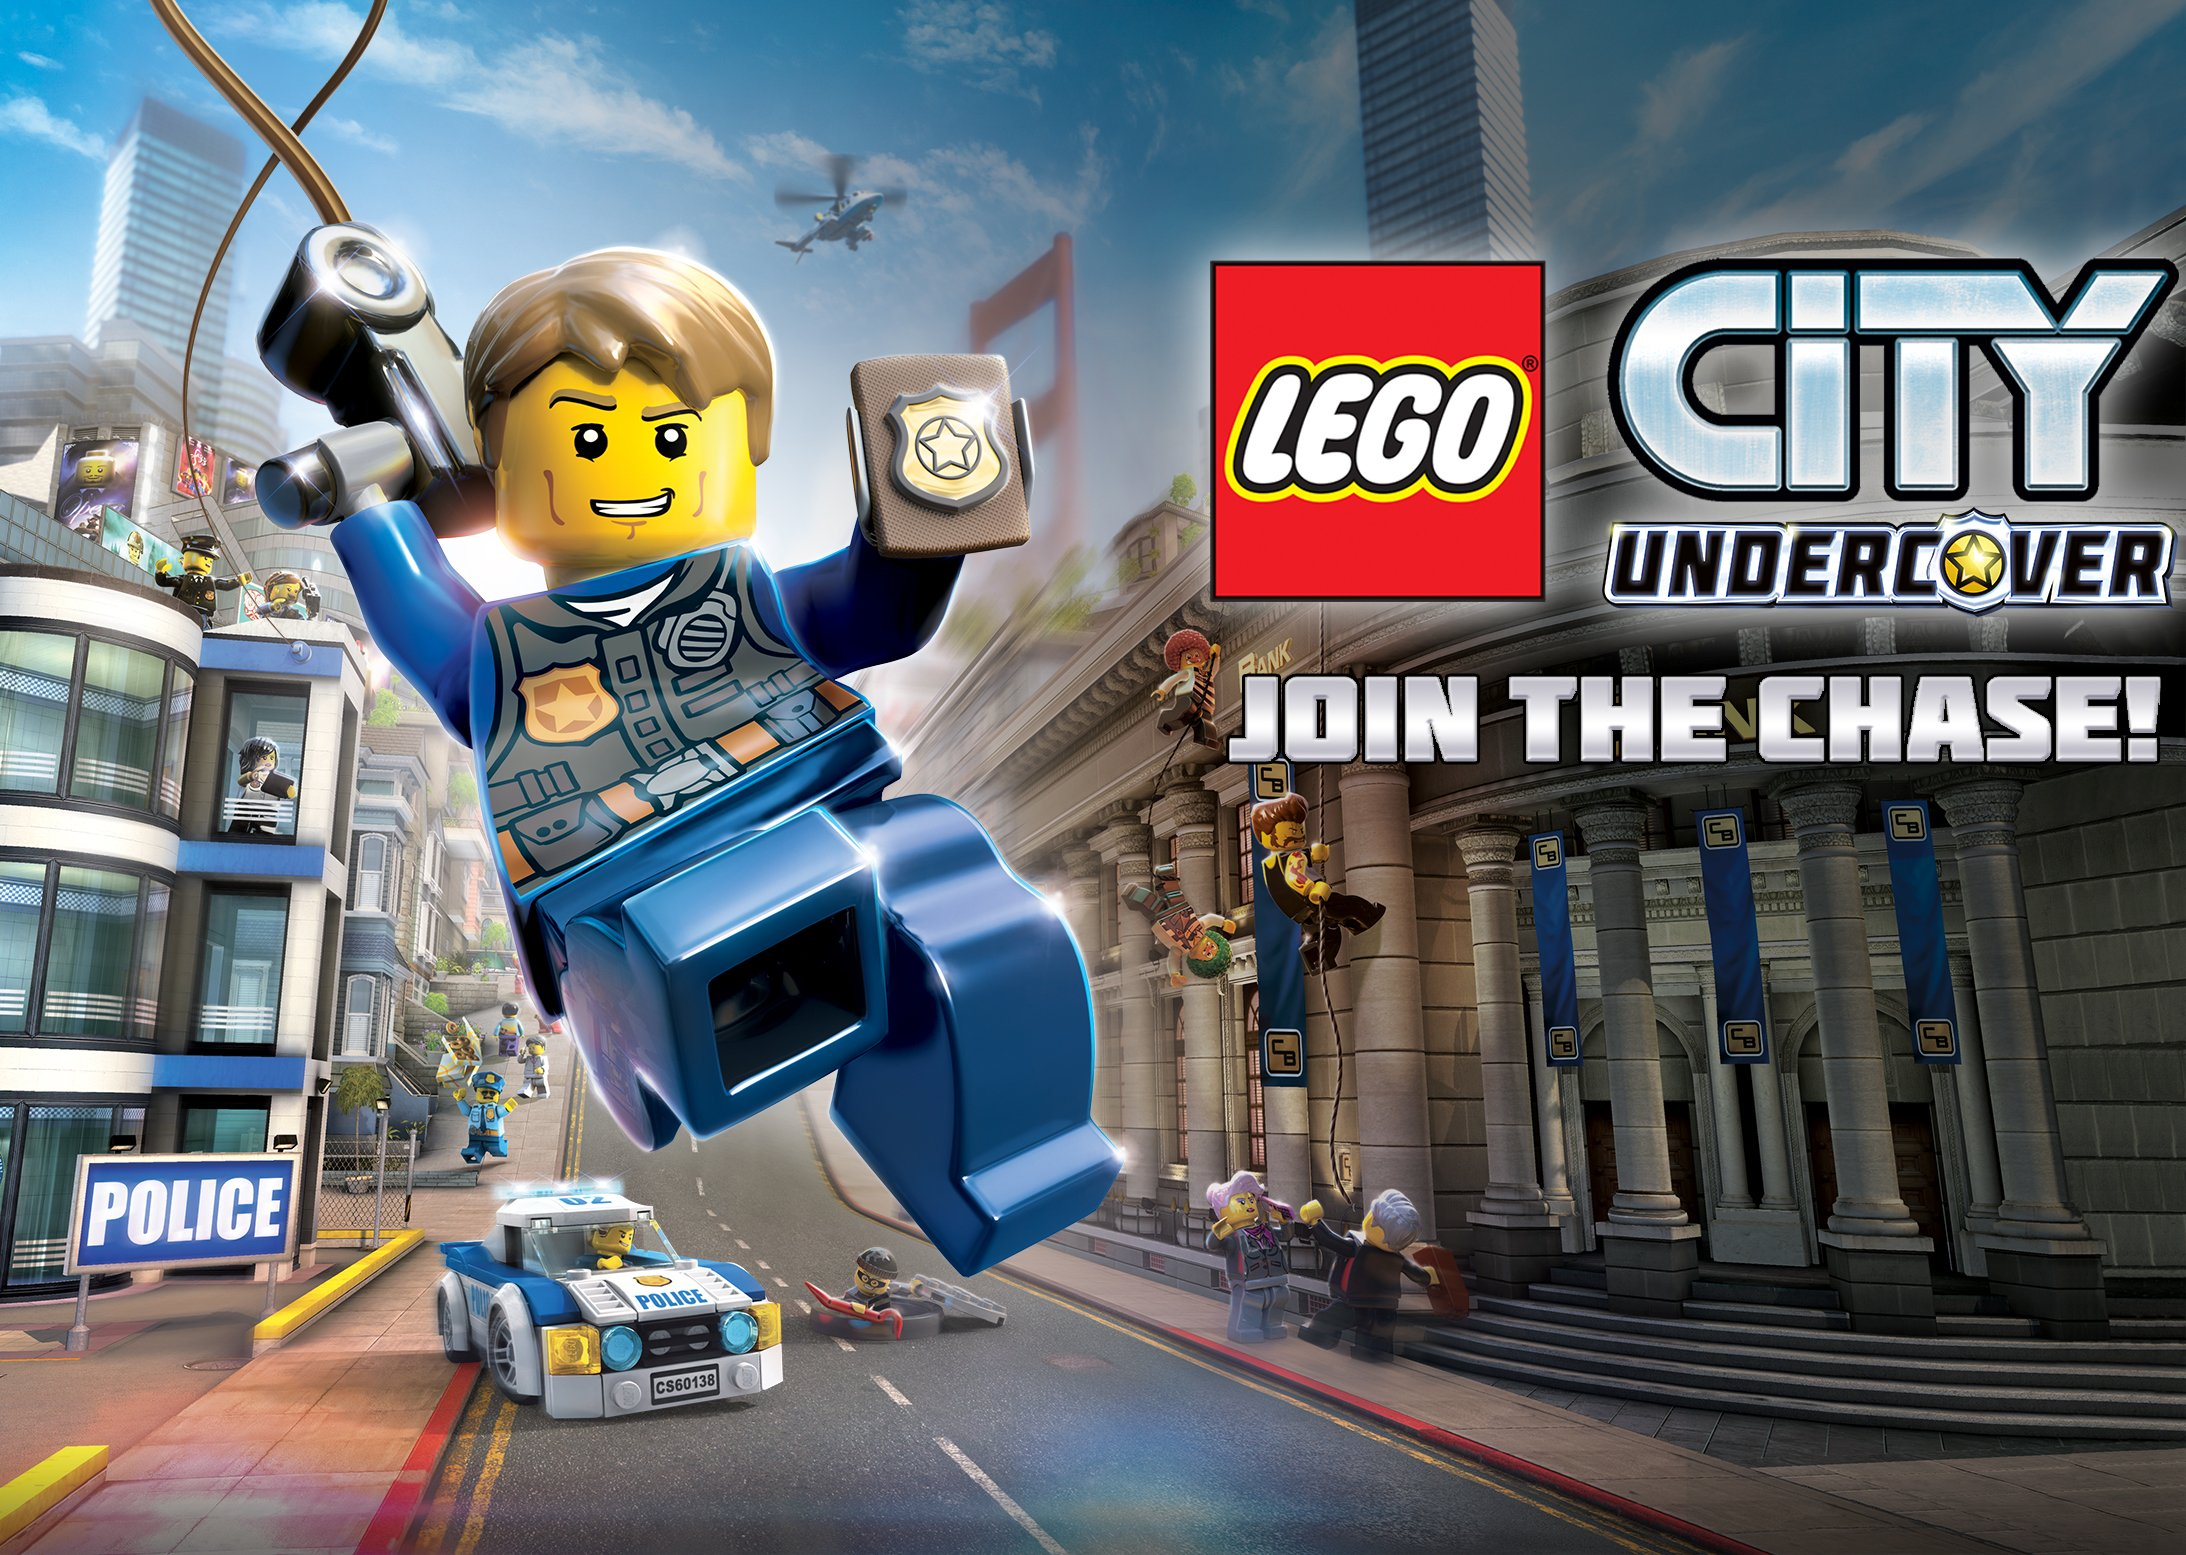 lego city undercover for ps4, xbox one, switch & pc